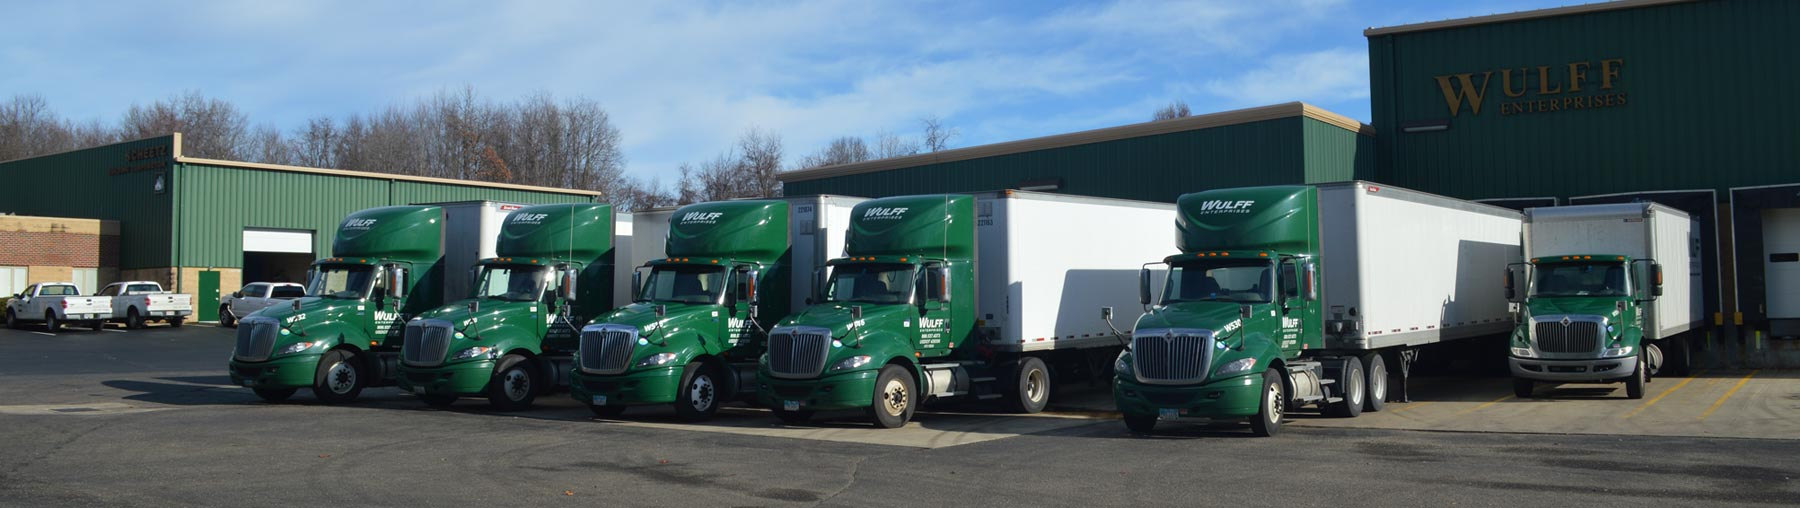 Fleet of green and white Wullf Enterprise tractor-trailers